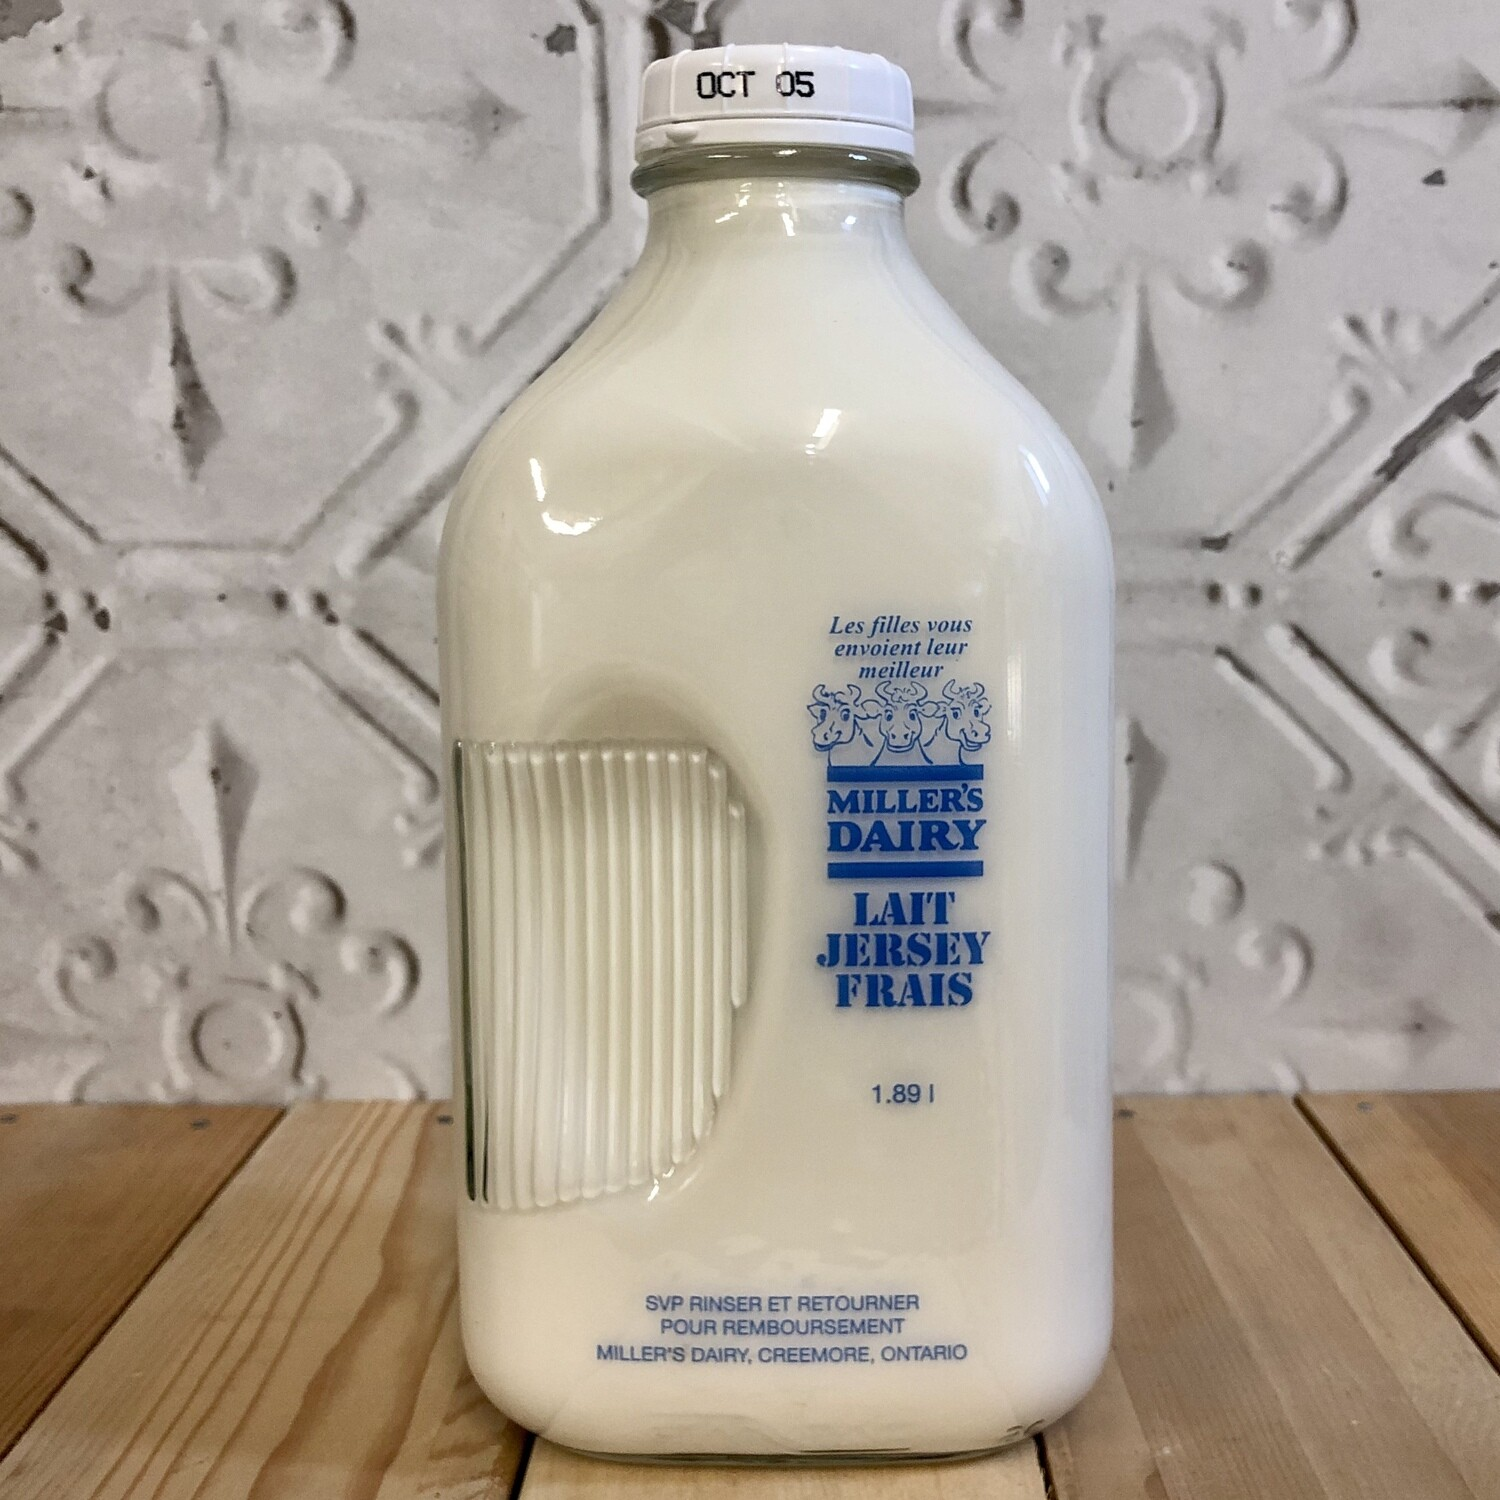 MILLERS DAIRY Whole Milk 1.89L